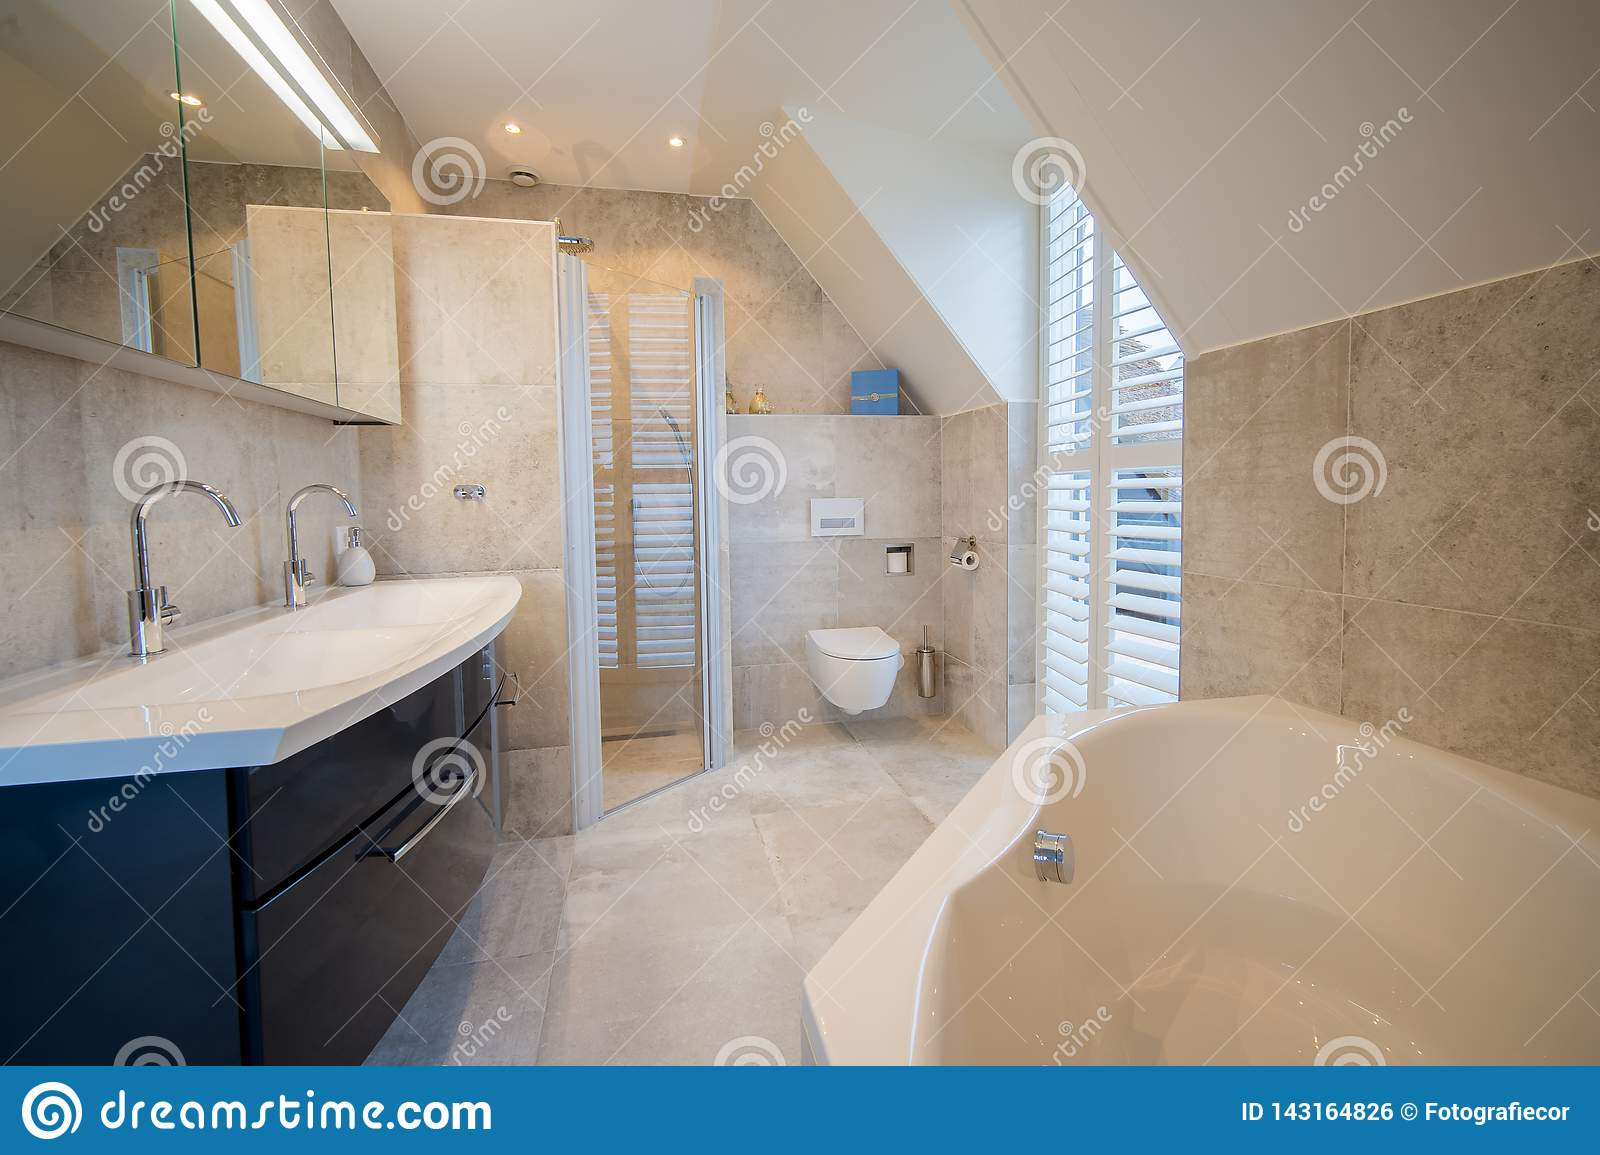 Architecturally Built Bathroom With Luxury Tiling White